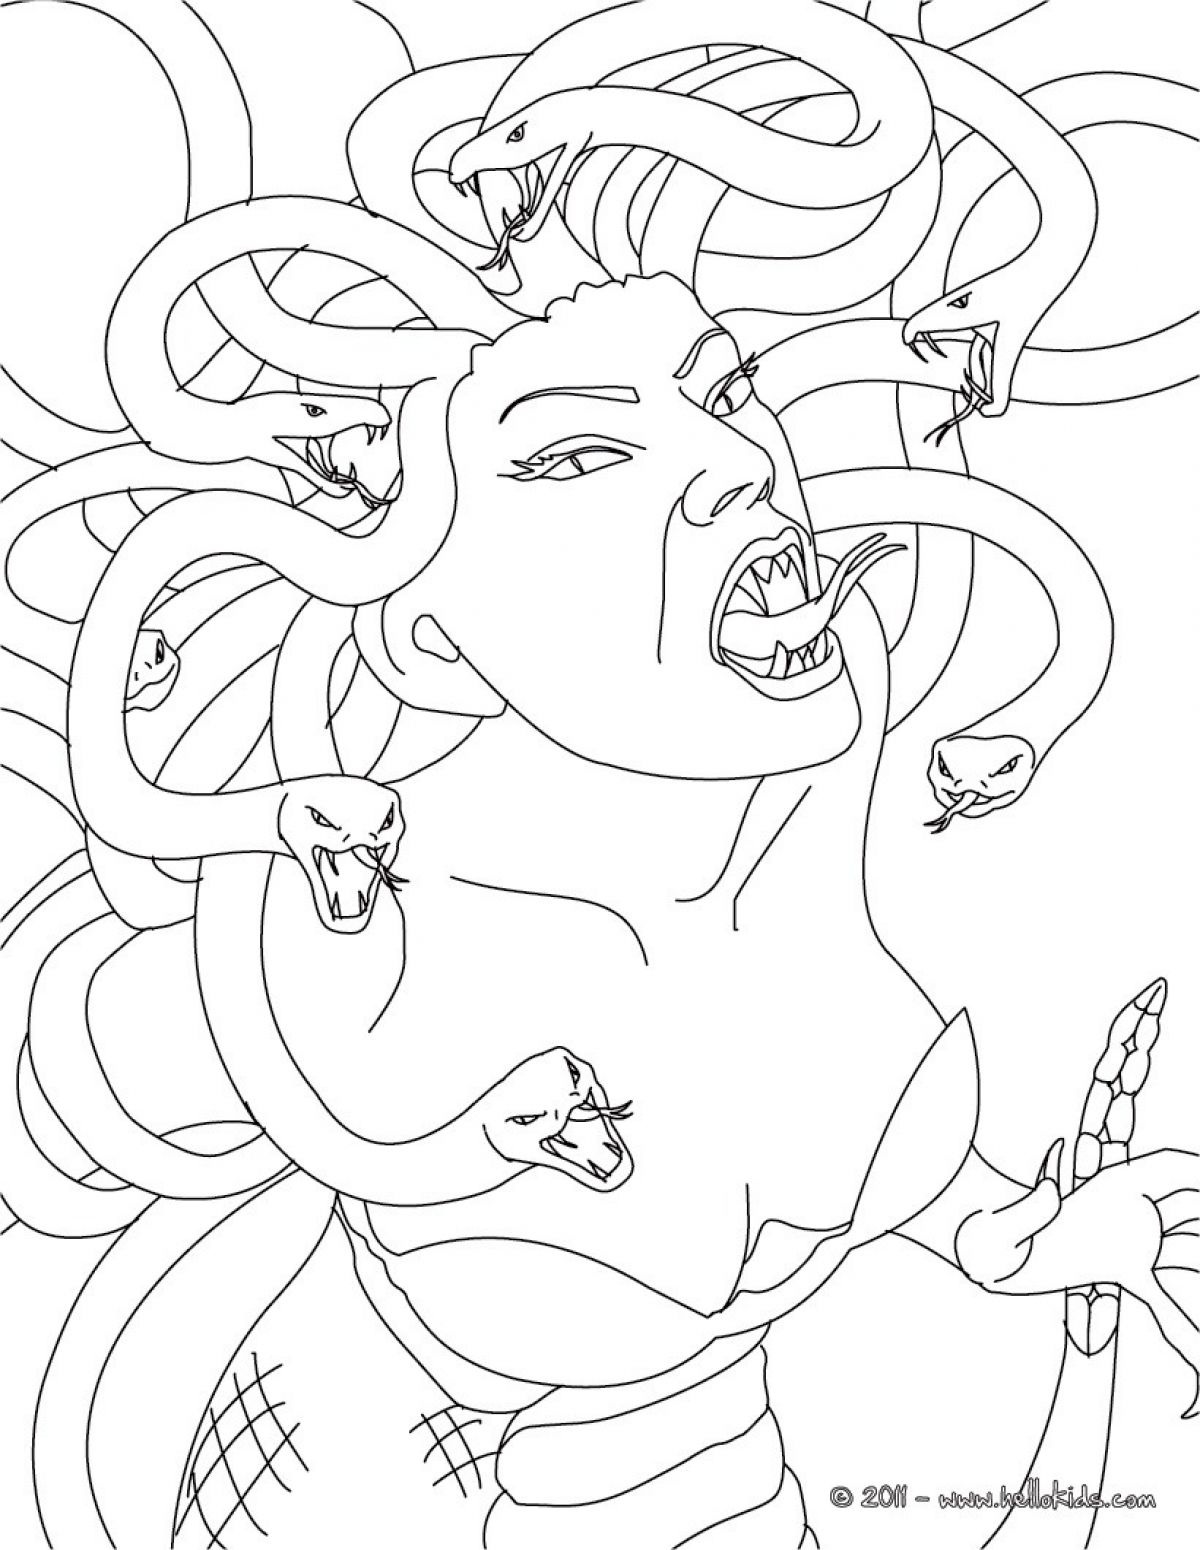 CHIMERA the monstruous fire-breathing creature coloring page. This ... | 1550x1200